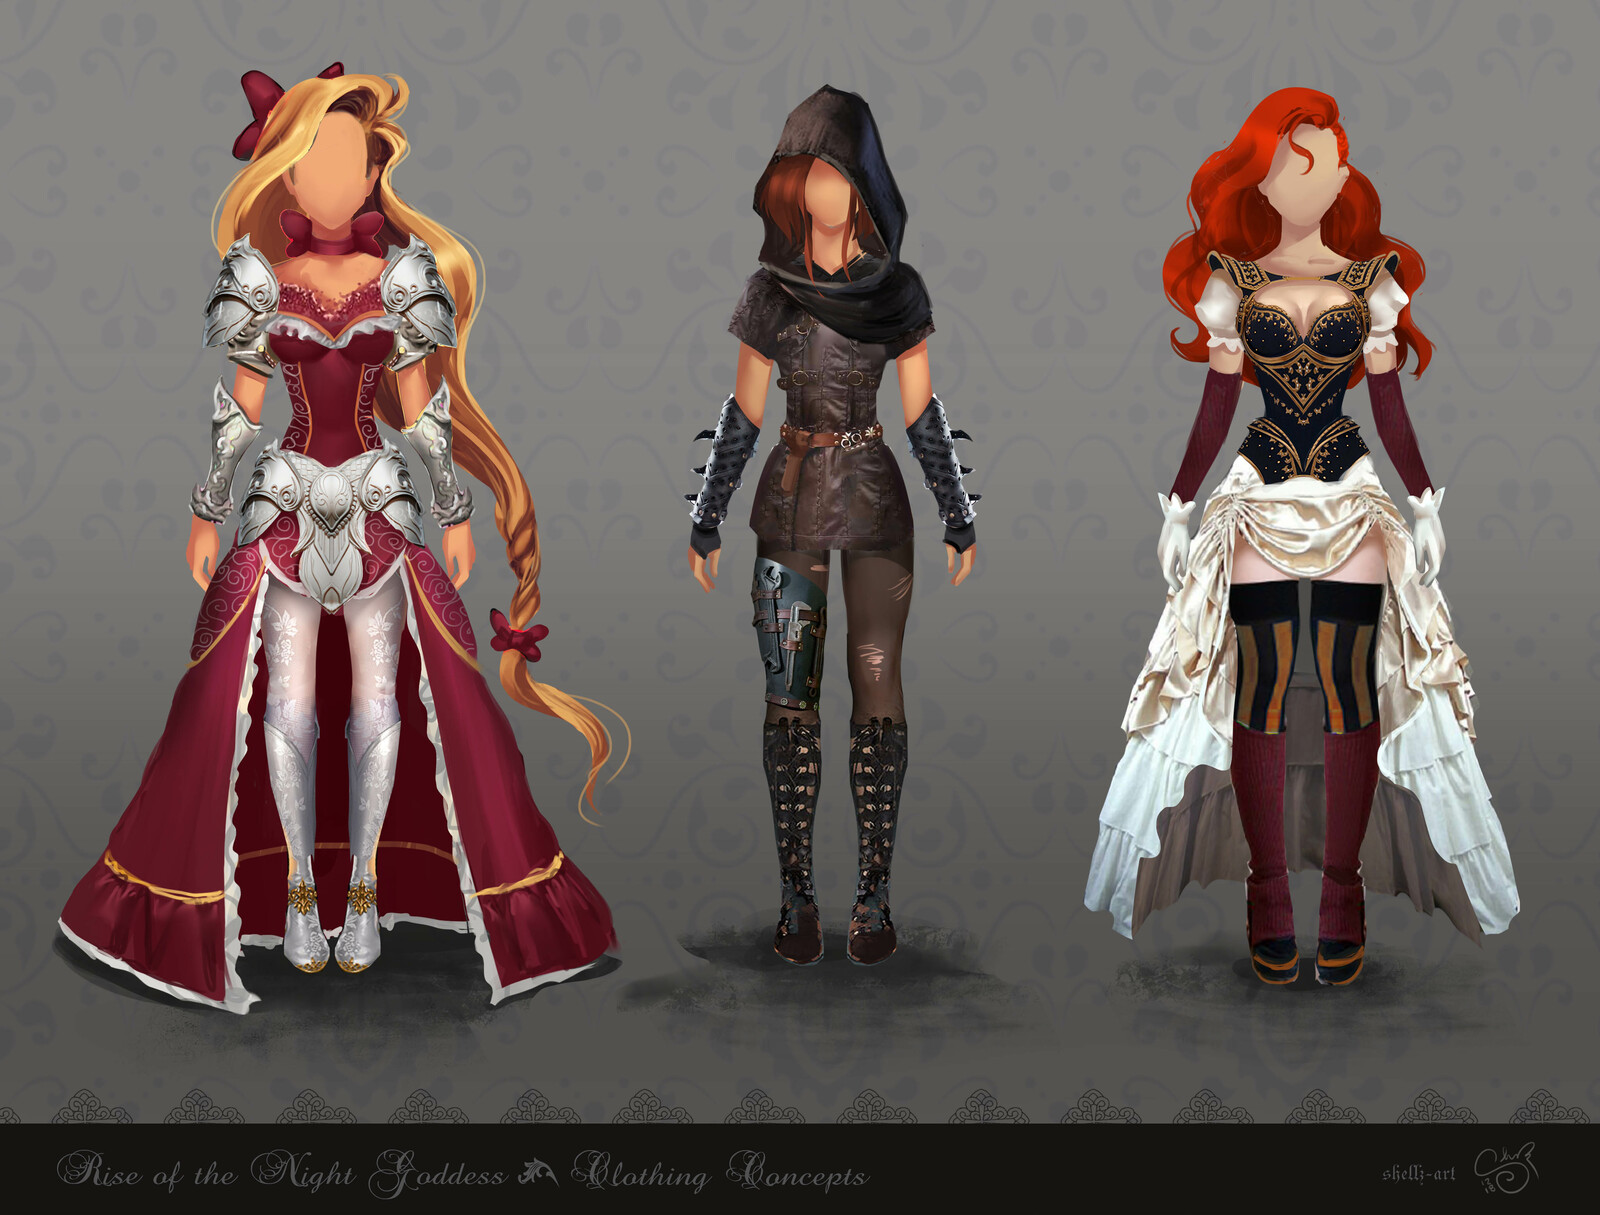 Avalerion Books | Rise of the Night Goddess - The Aguane Concepts